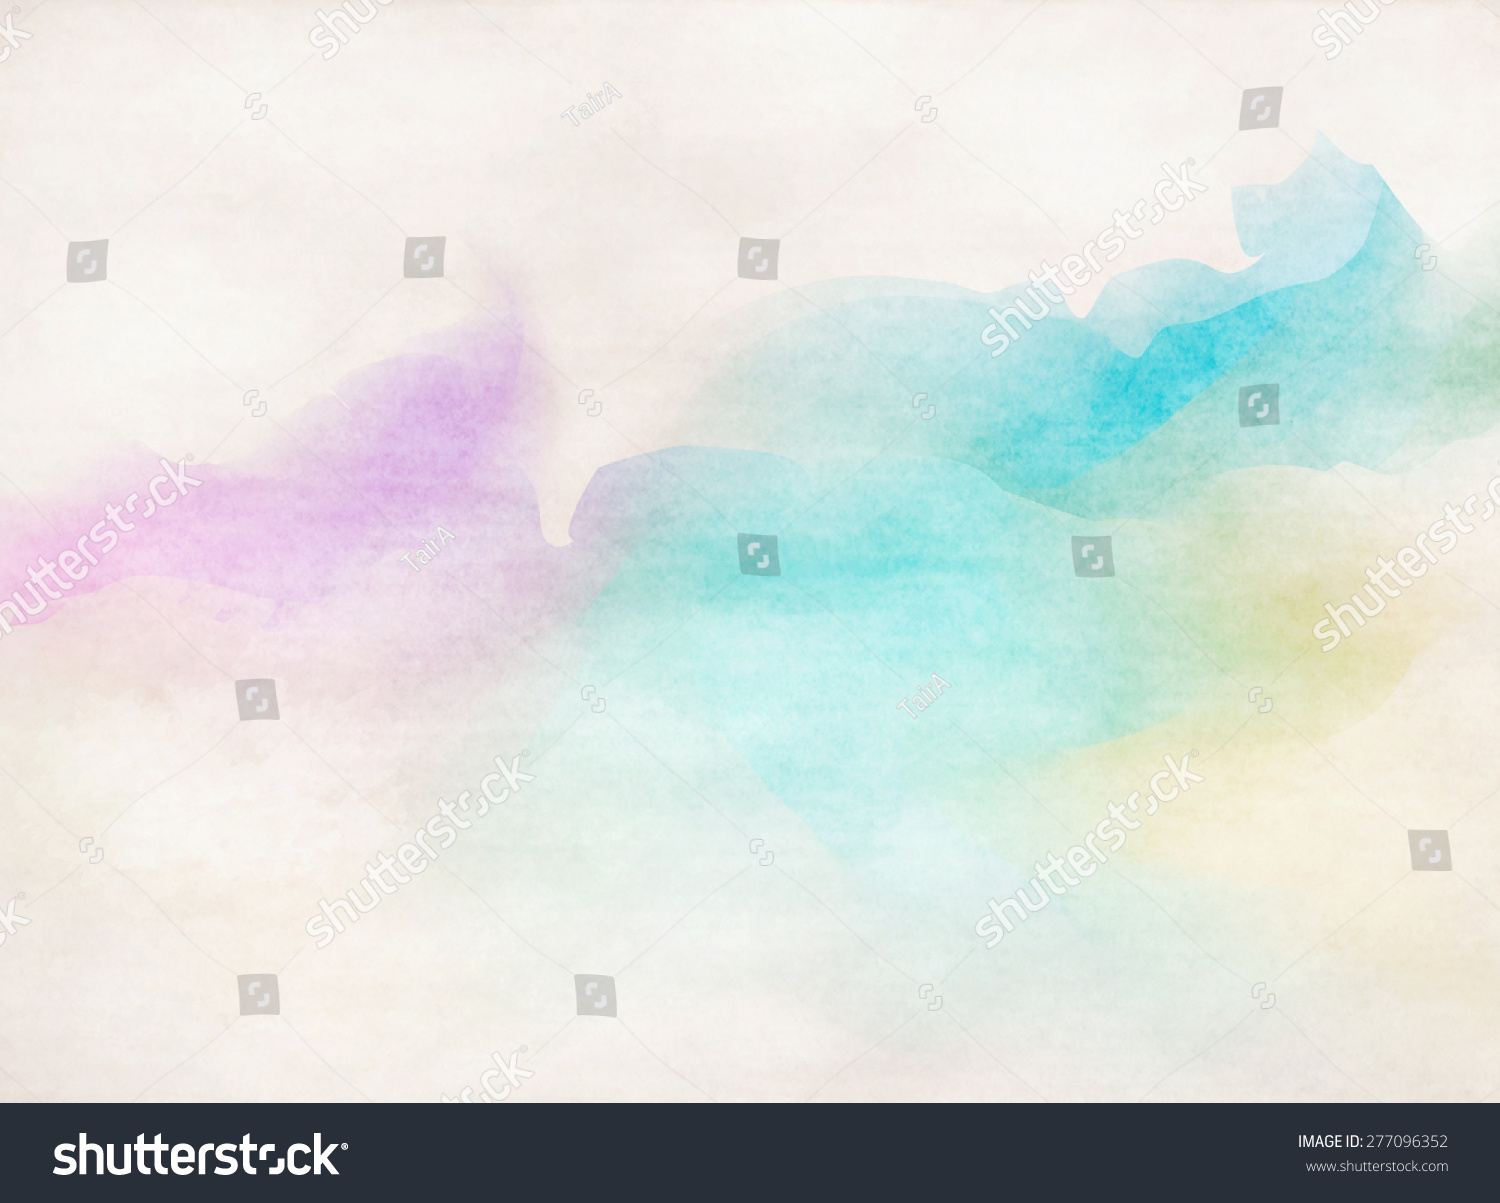 Colorful Watercolor Background. Grunge Paper Texture ...